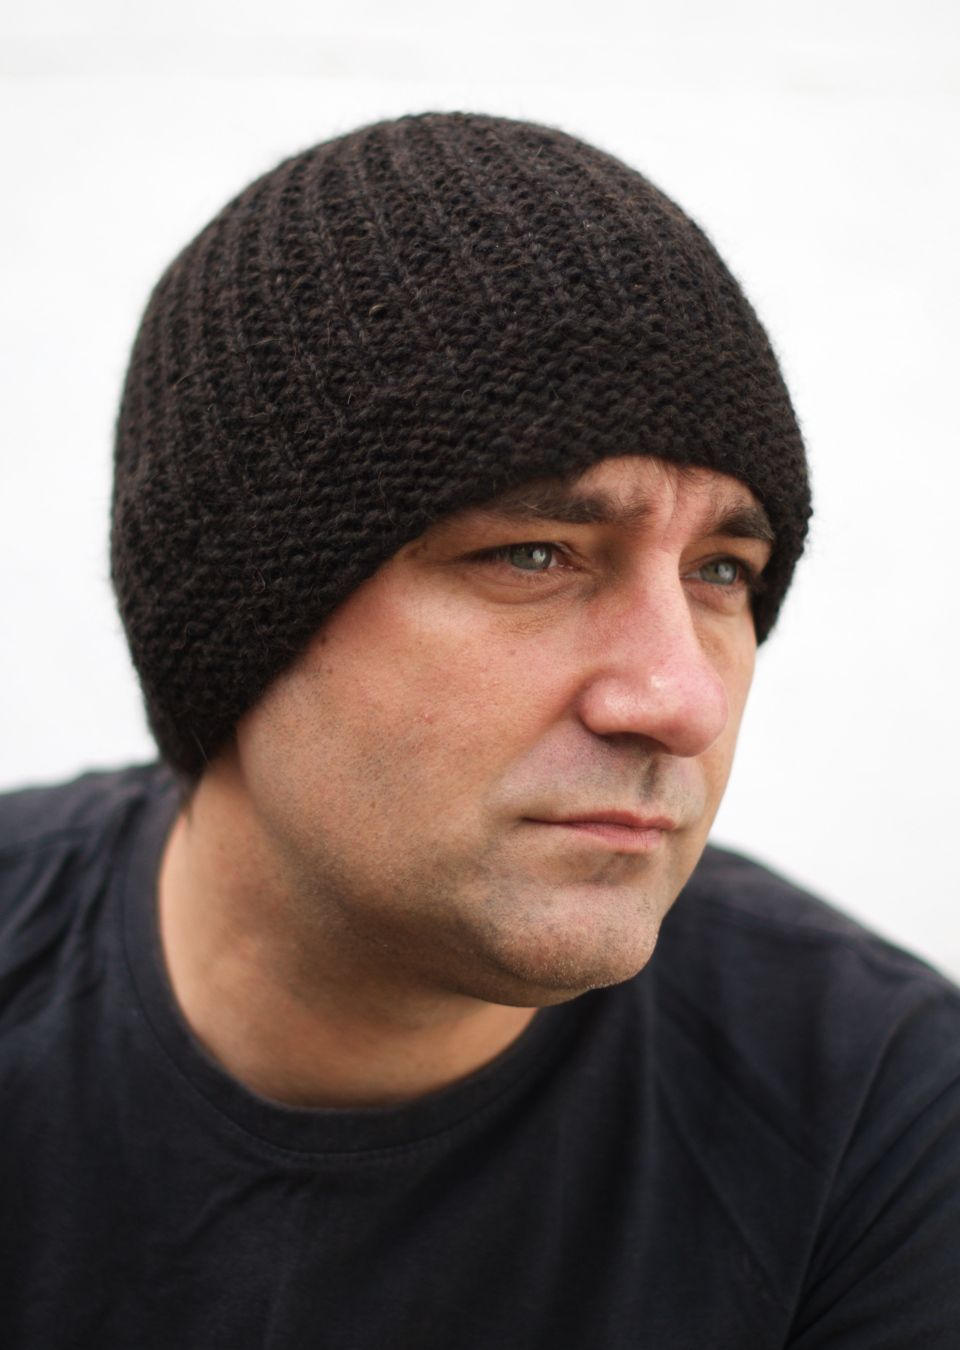 36b7aafbff1 Geko Mens Beanie Hat Kit - designed by the super talented Woolly Wormhead